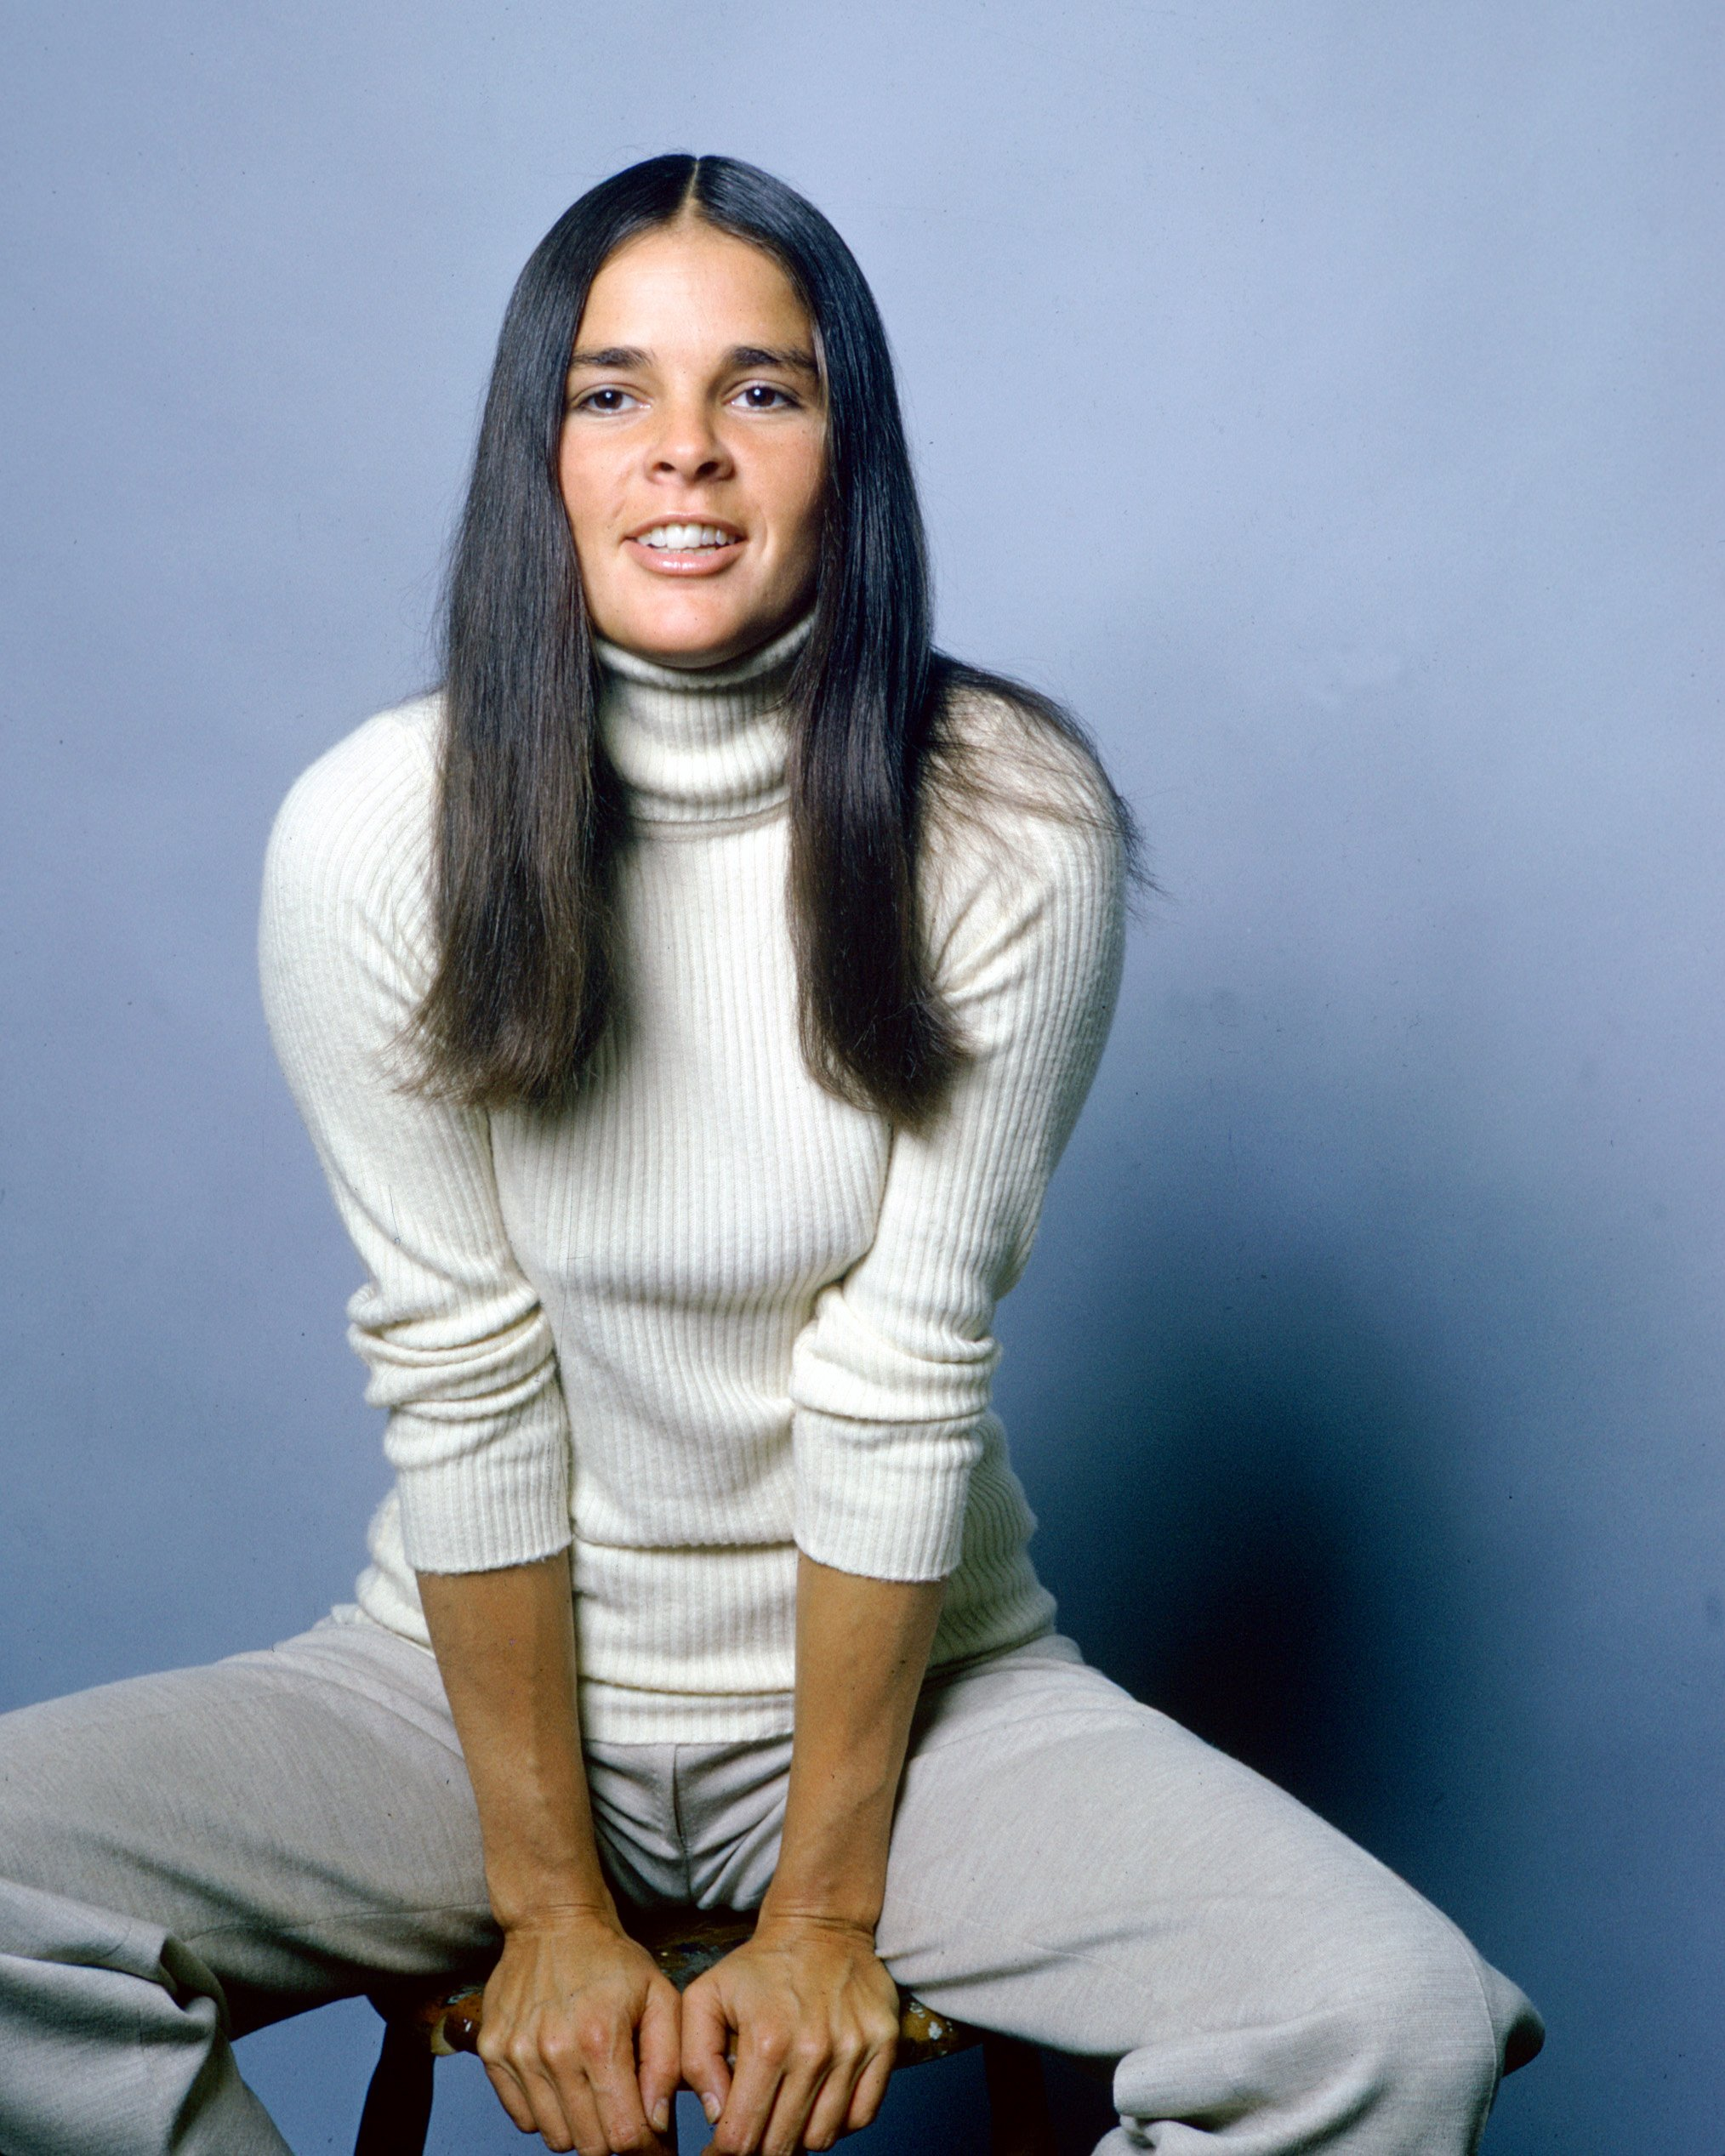 Ali MacGraw, US actress, in a publicity still for the film 'Love Story', USA, circa 1970. The 1970 romance, directed bby Arthur Hiller, starred MacGraw as 'Jenny Cavalleri'.| Source: Getty Images